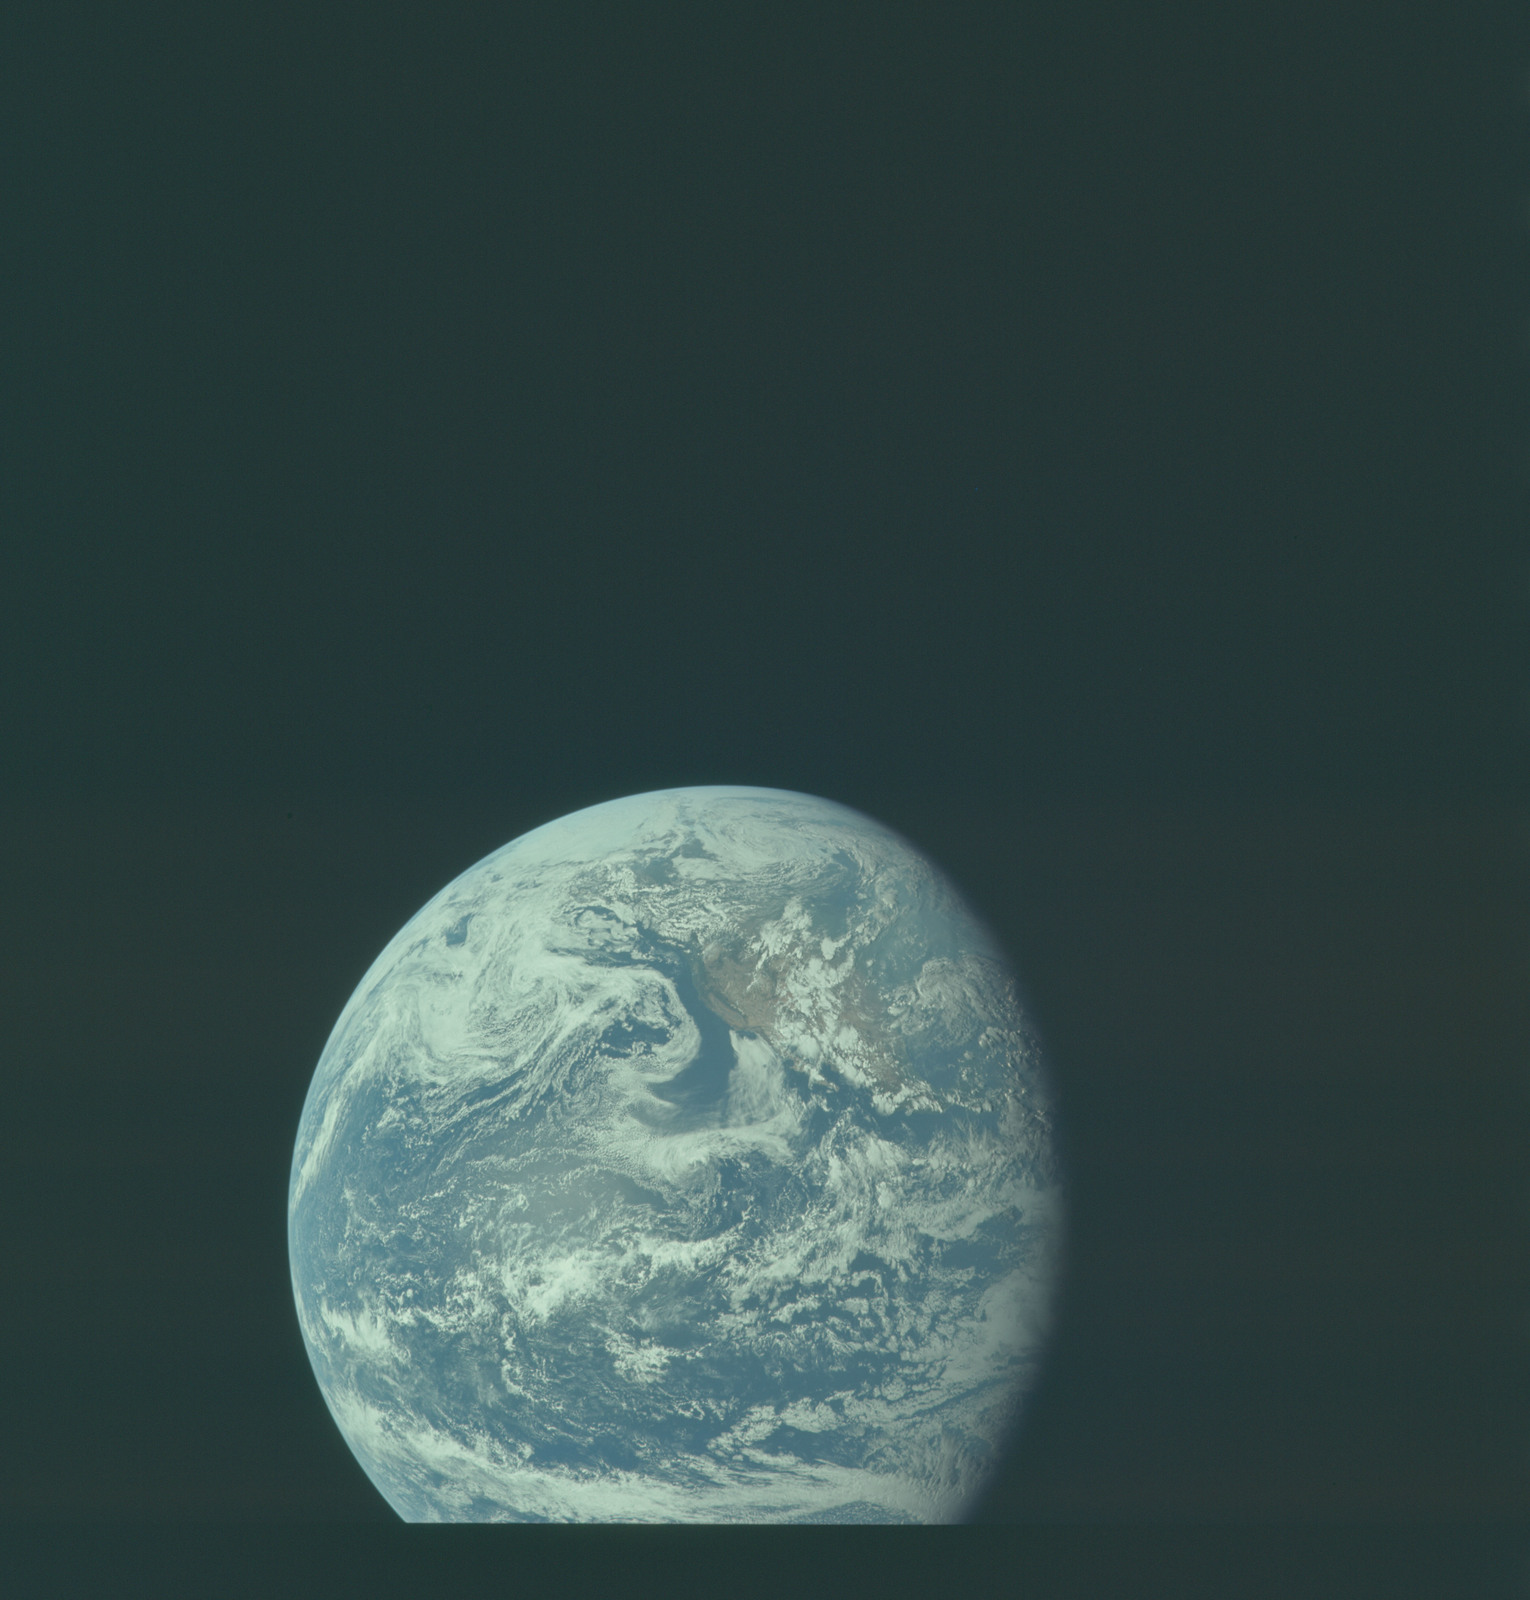 AS11-36-5334 - Apollo 11 - Apollo 11 Mission image - Earth view